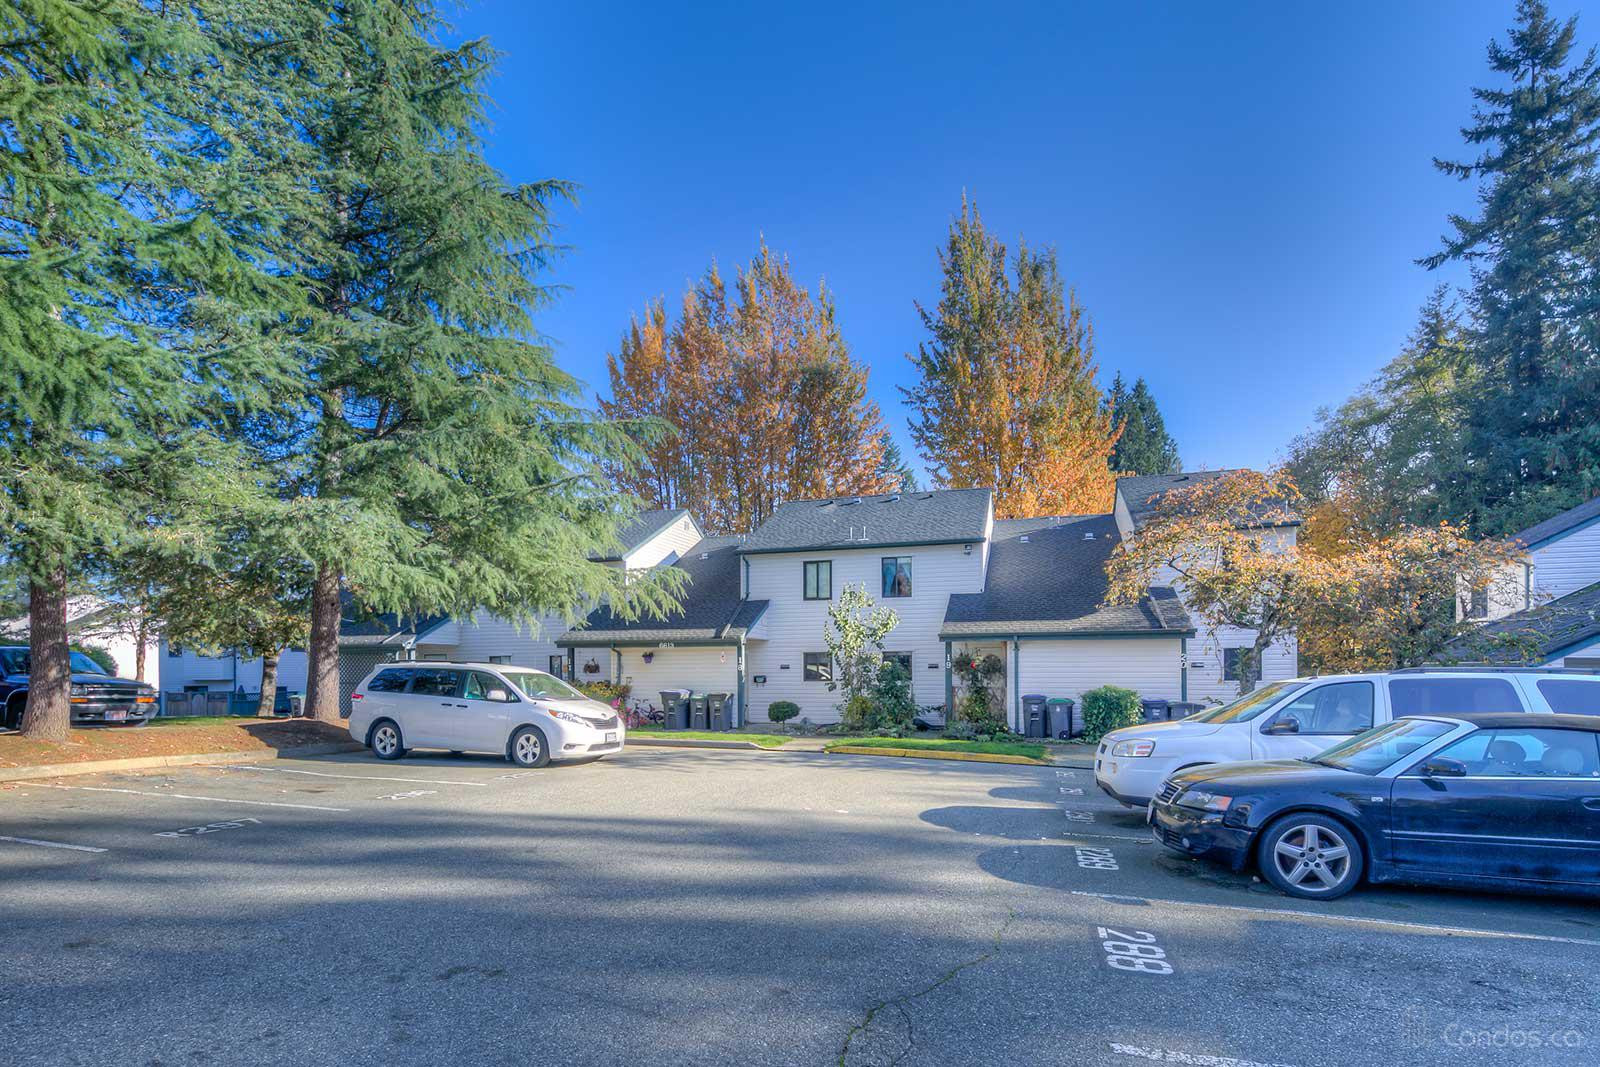 Hyland Creek at 13616 67 Ave, Surrey 0